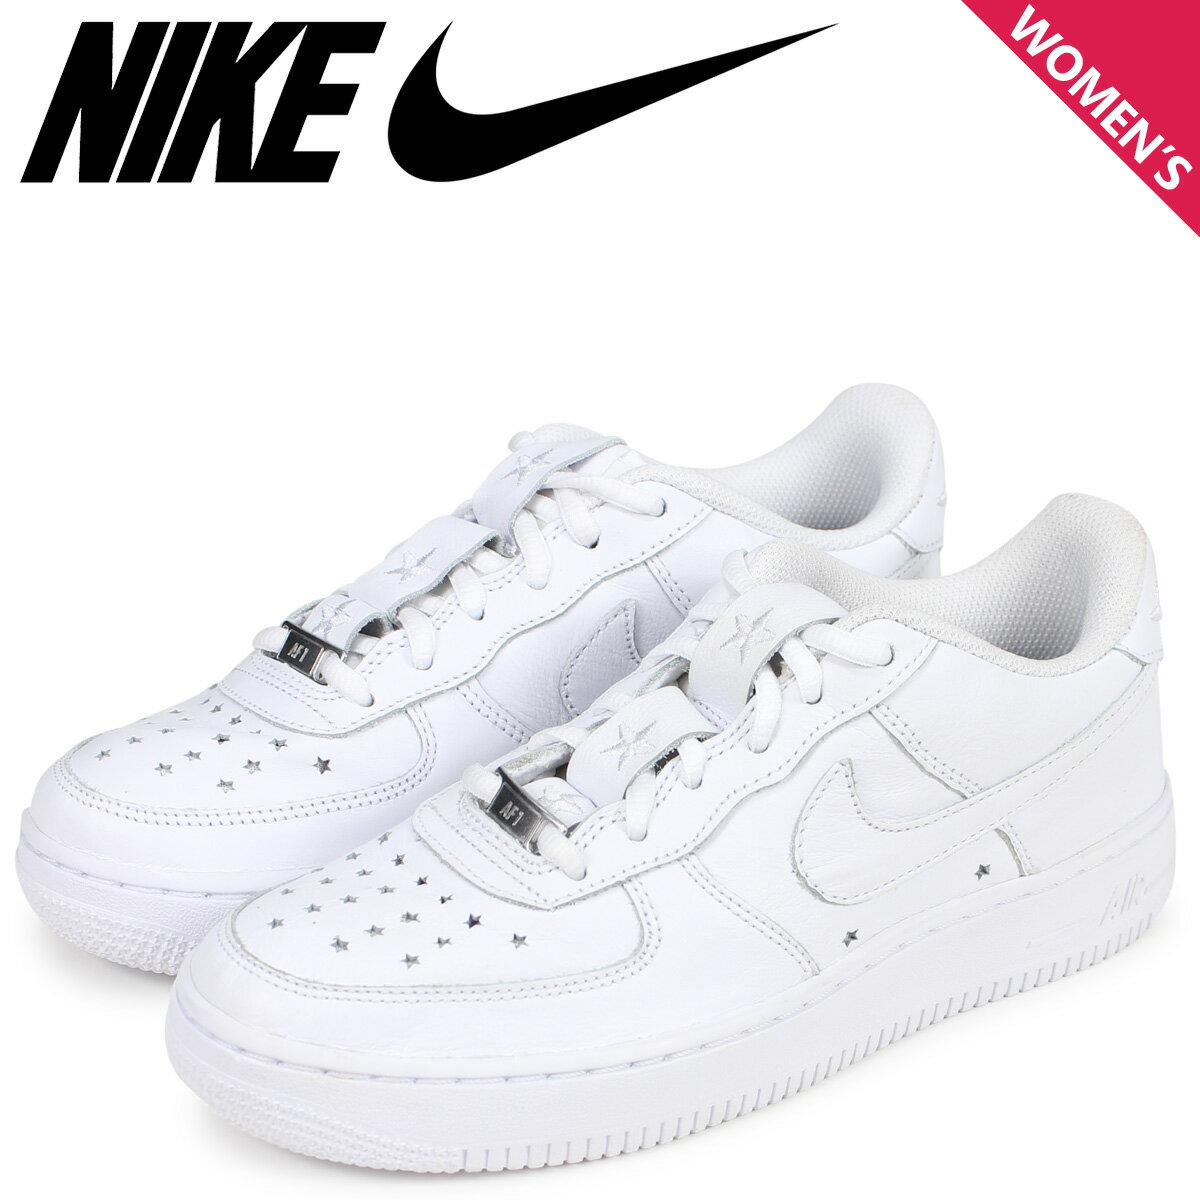 NIKE ナイキ エアフォース1 スニーカー レディース AIR FORCE 1 LOW GS INDEPENDENCE DAY PACK ホワイト 白 AR0688-100画像